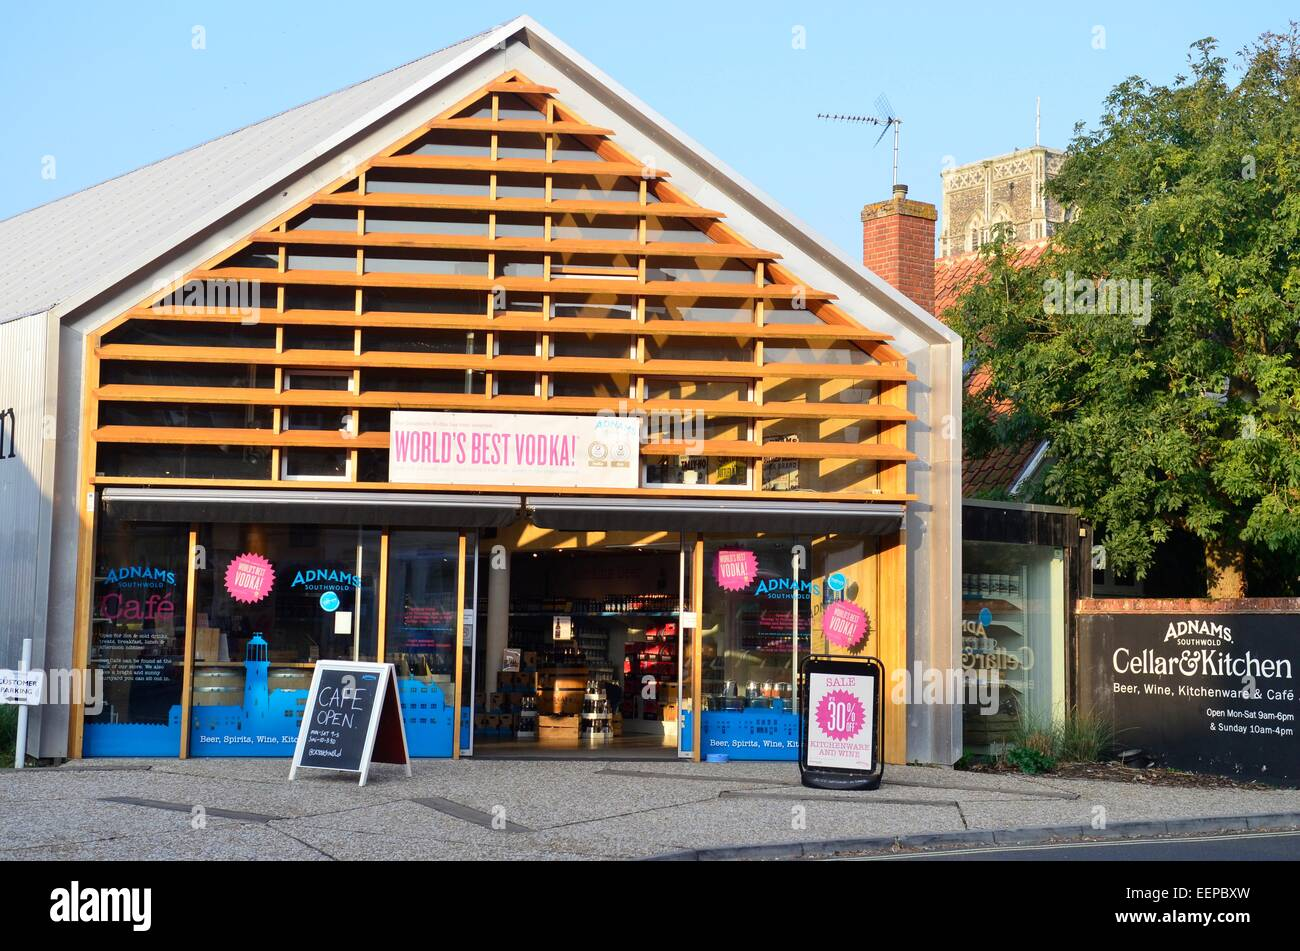 adnams brewery distillery gift shop in southwold suffolk stock photo royalty free image. Black Bedroom Furniture Sets. Home Design Ideas